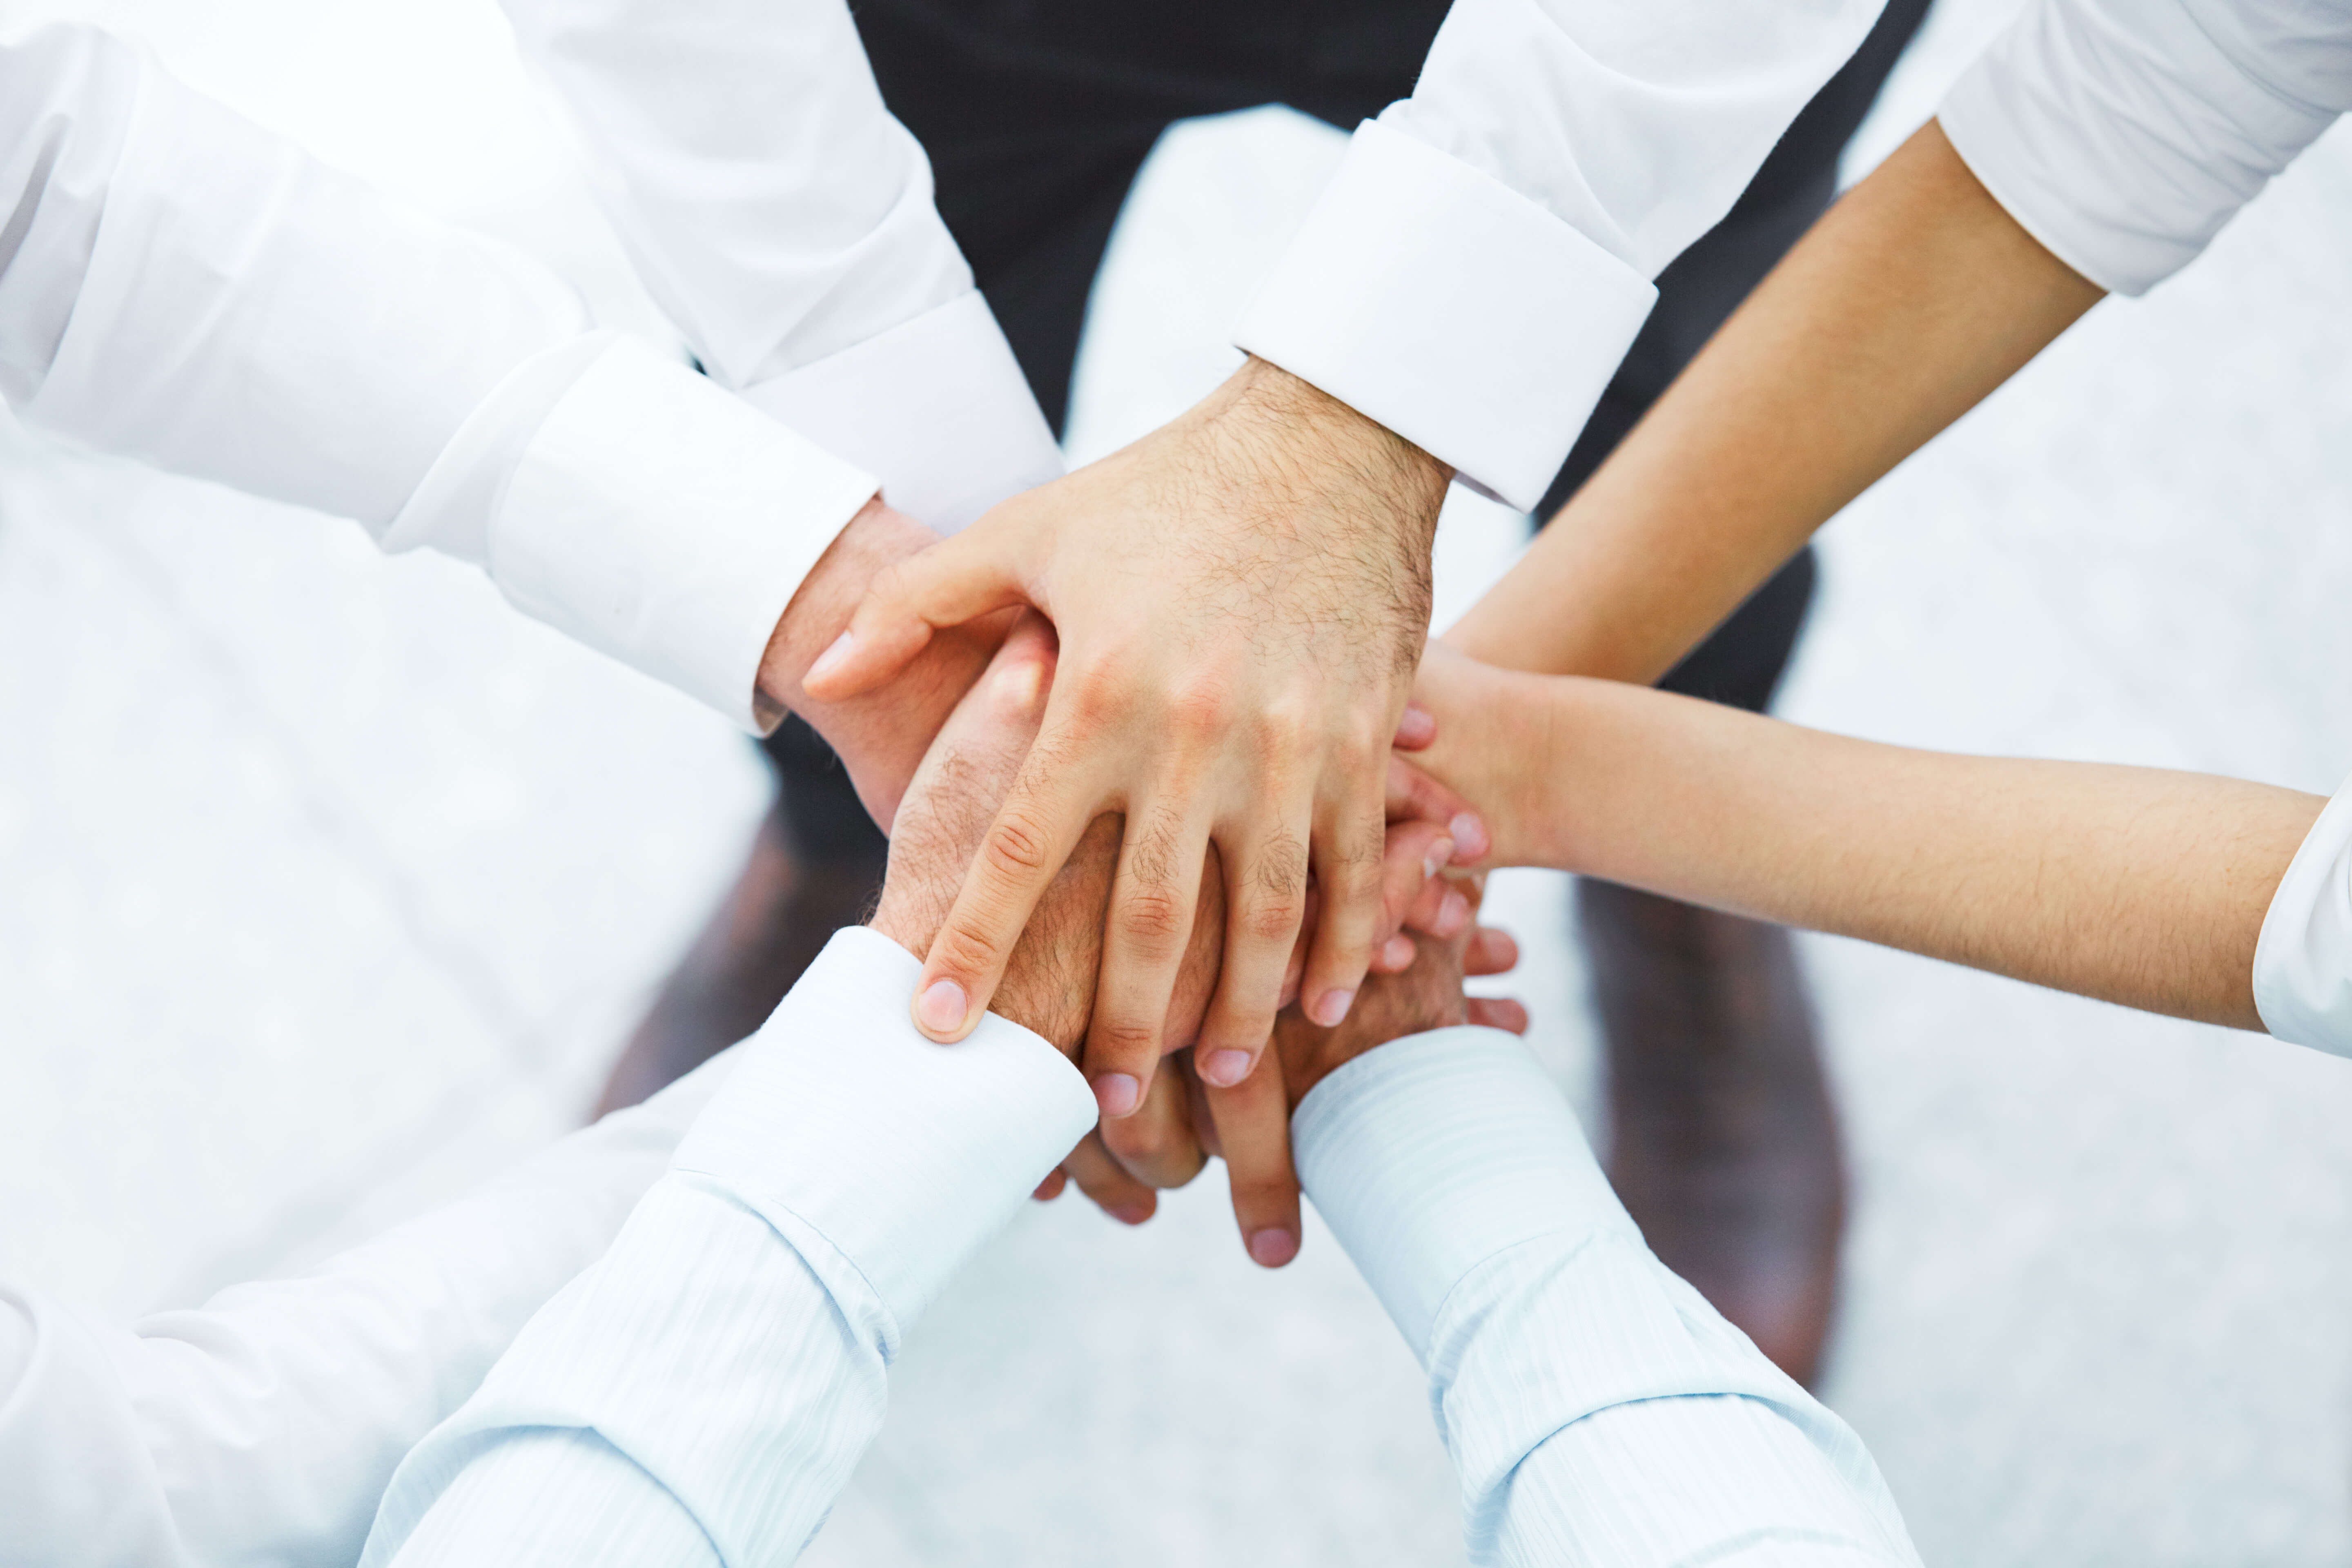 Treat Co-workers, Employees with the Same Care You Offer Yourself